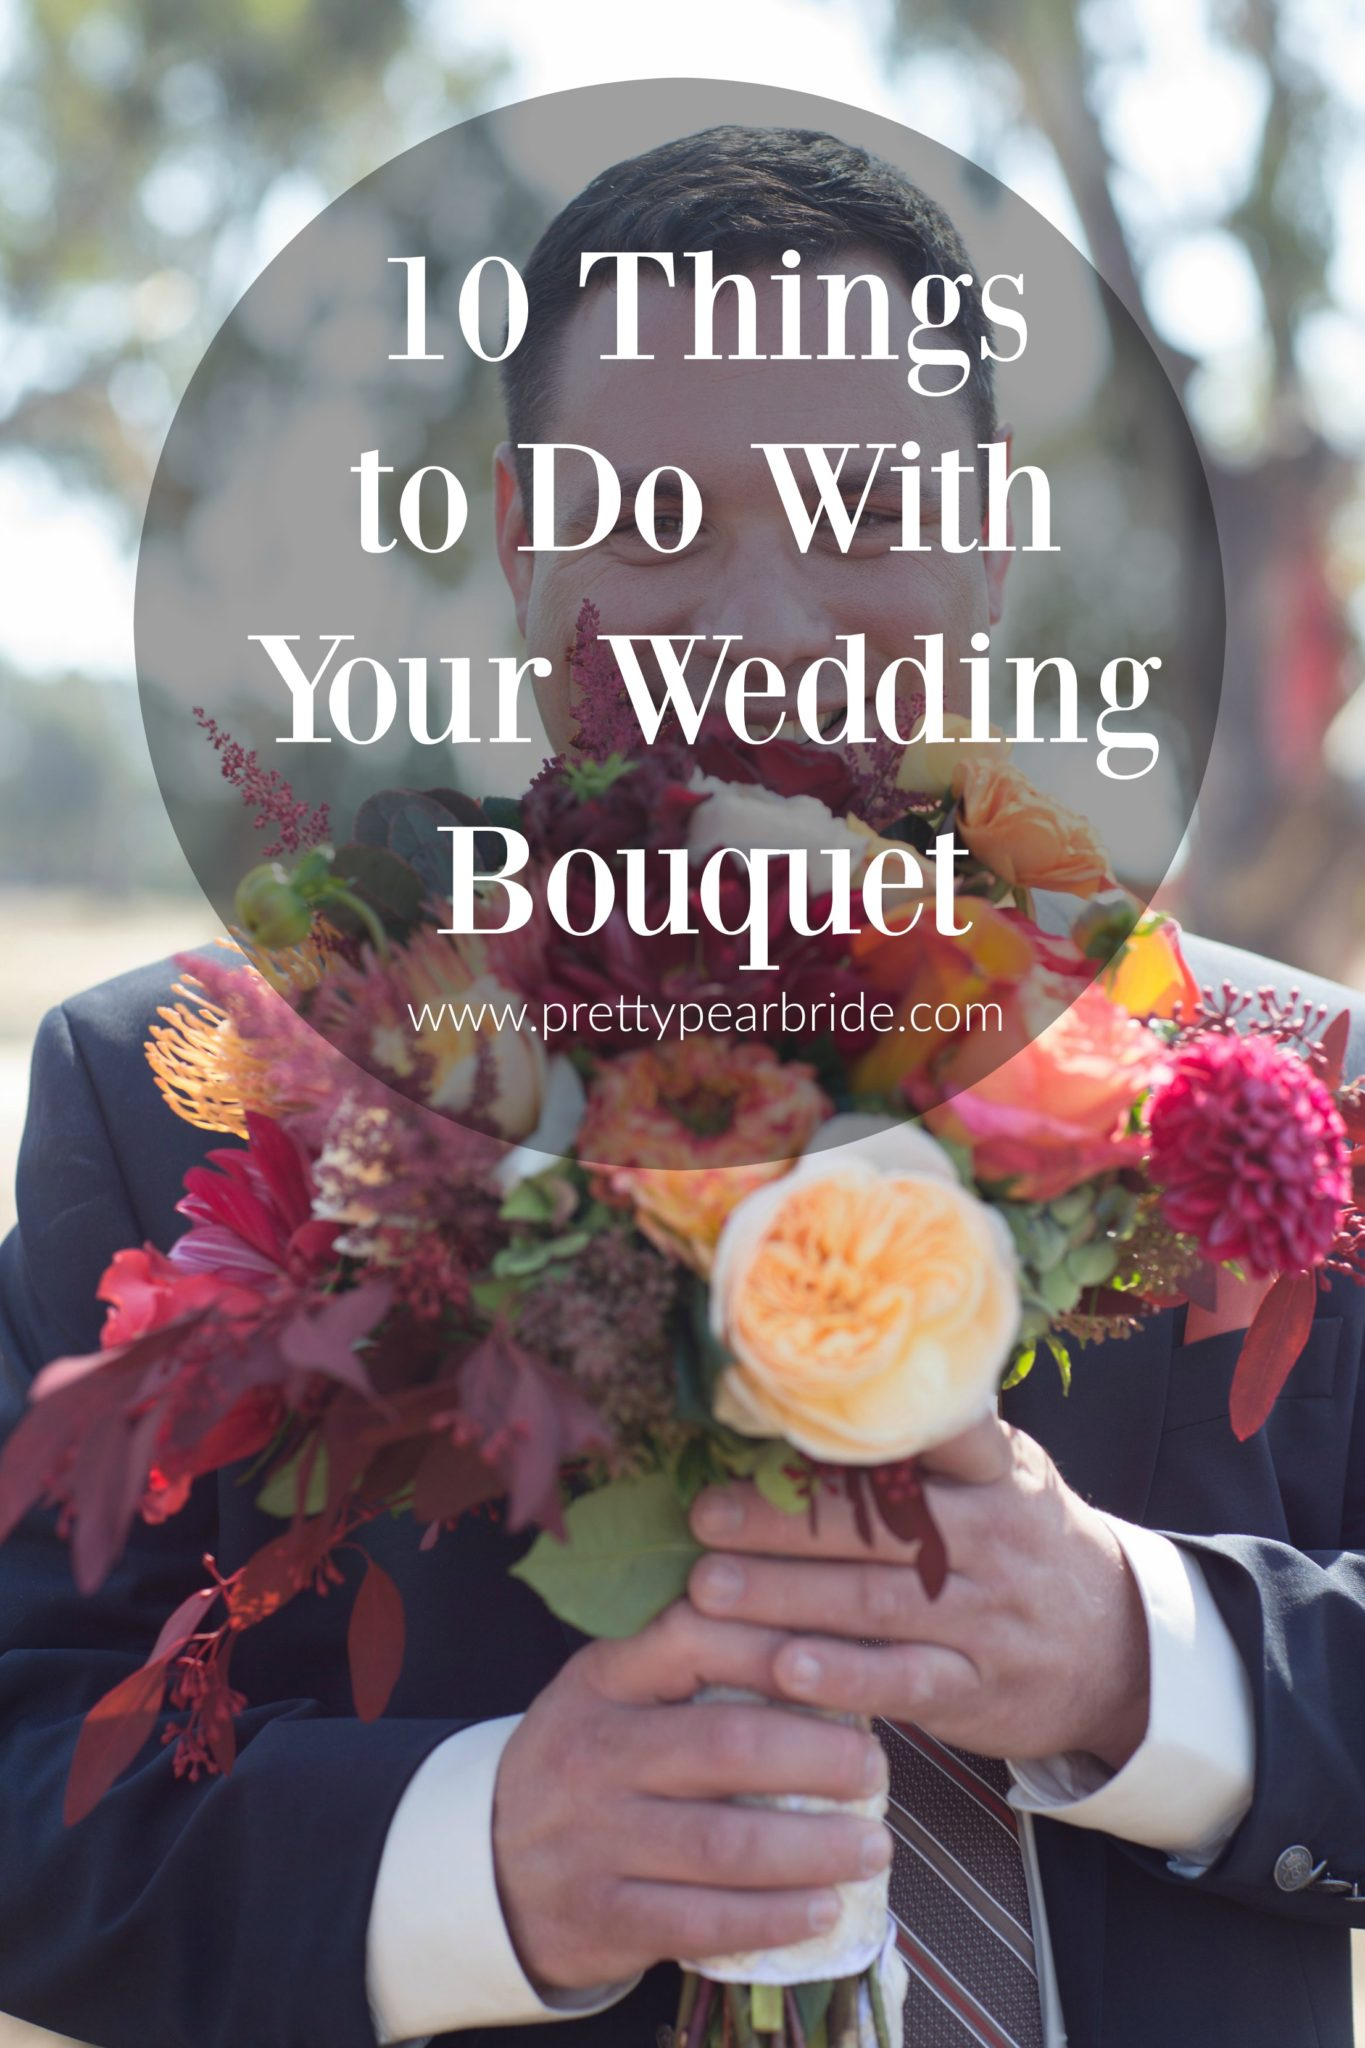 Ten Things to do With Your Wedding Bouquet | Pretty Pear Bride